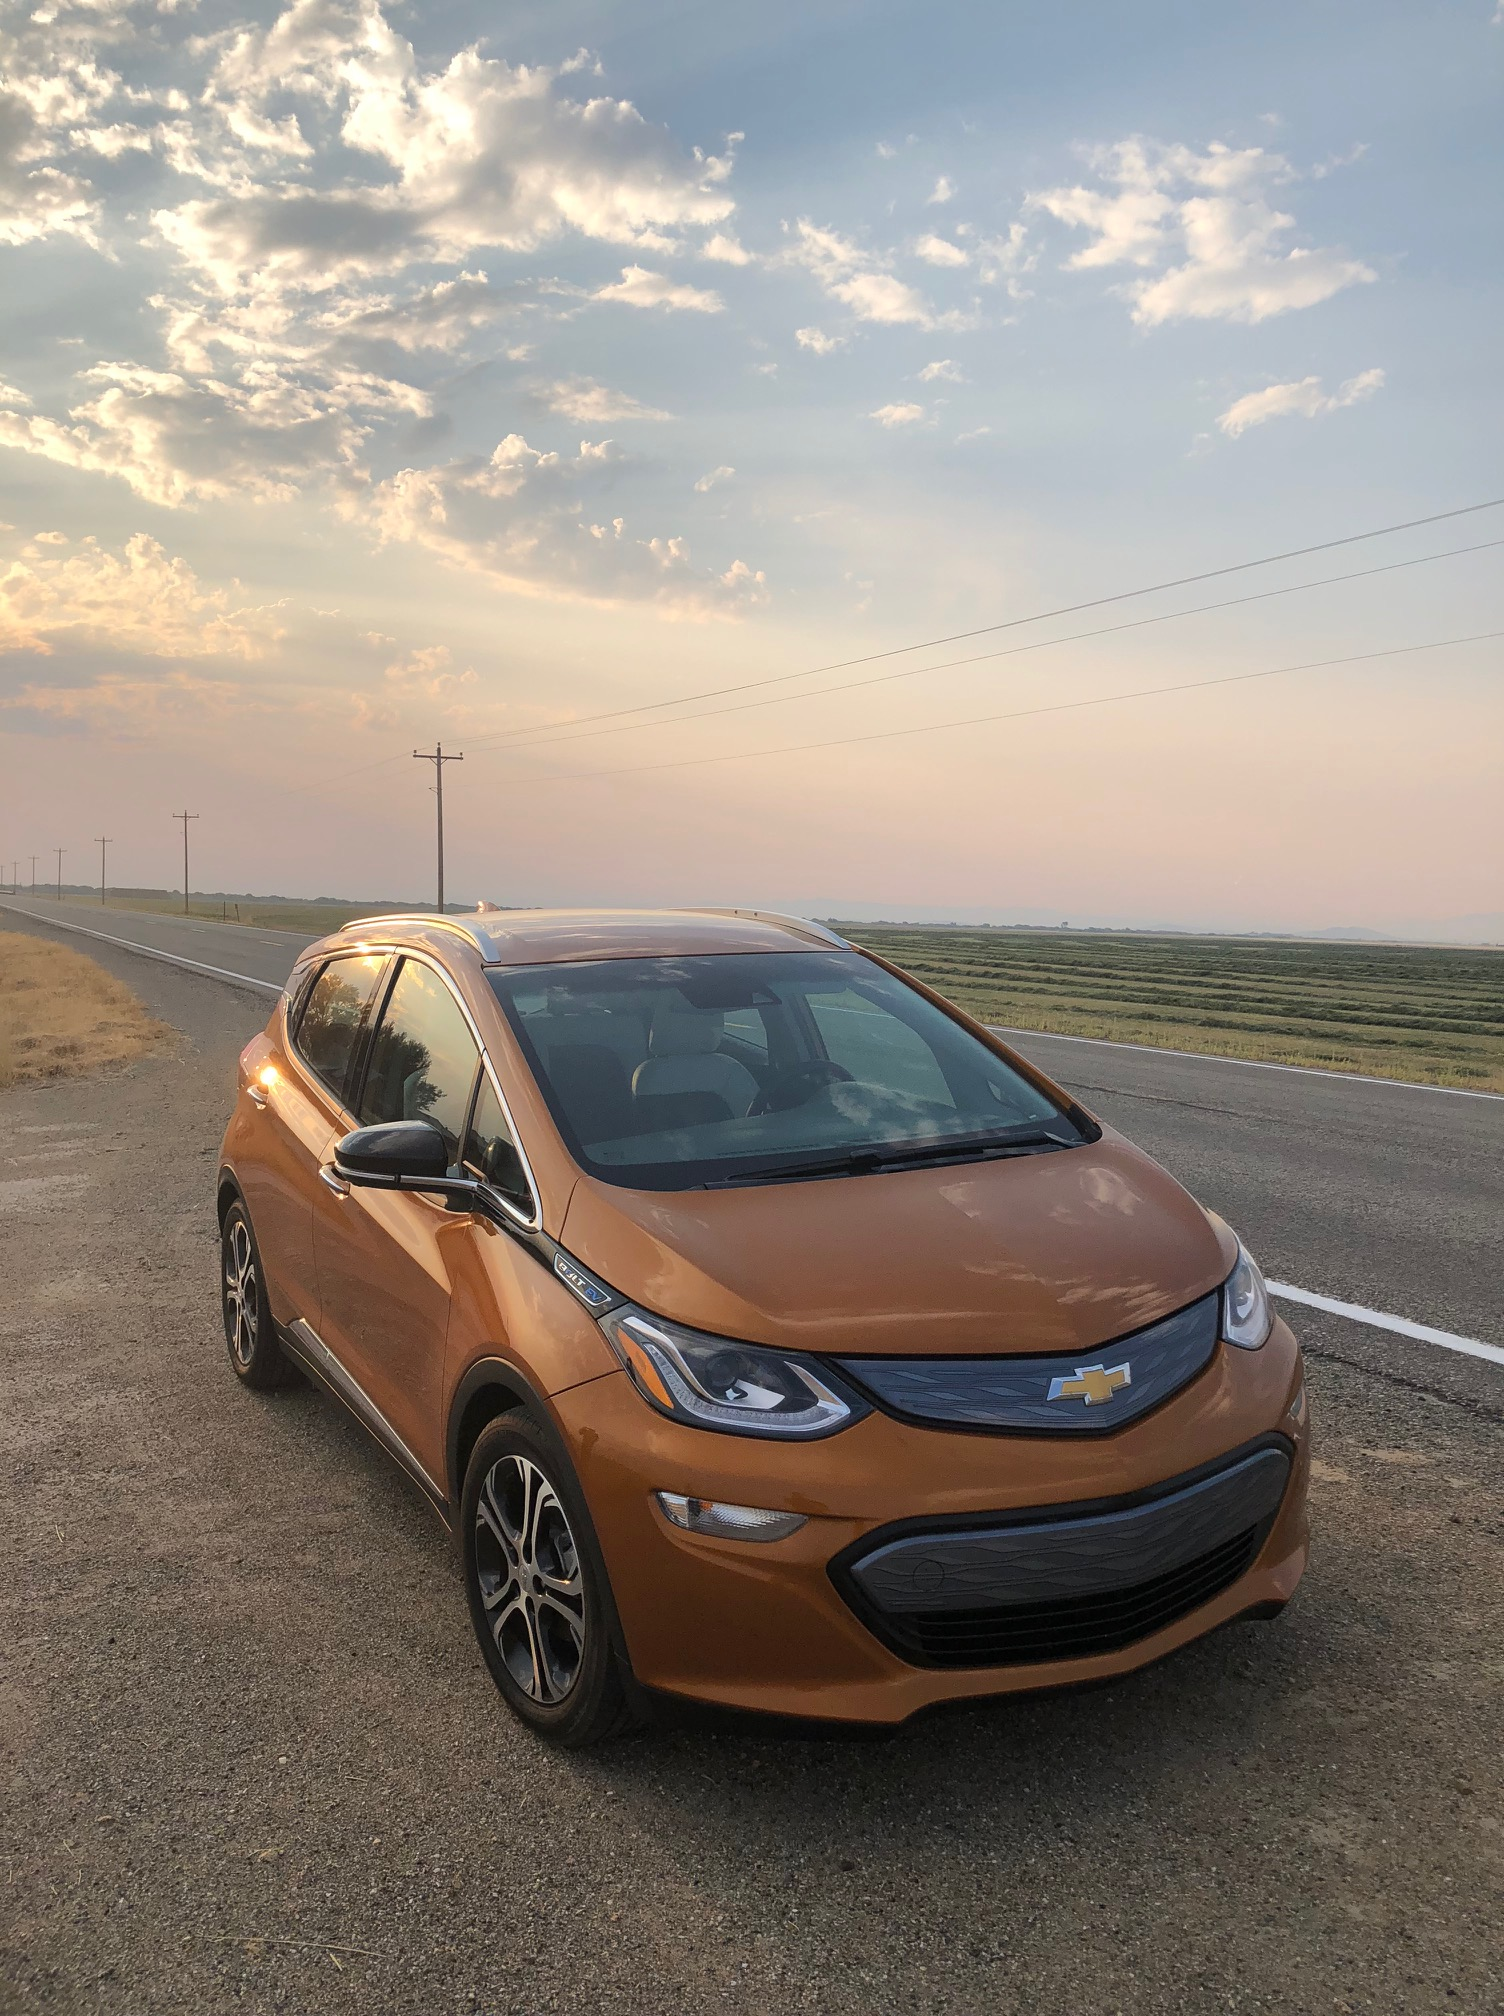 2018 chevy bolt ev review buy online deal electric vehicle